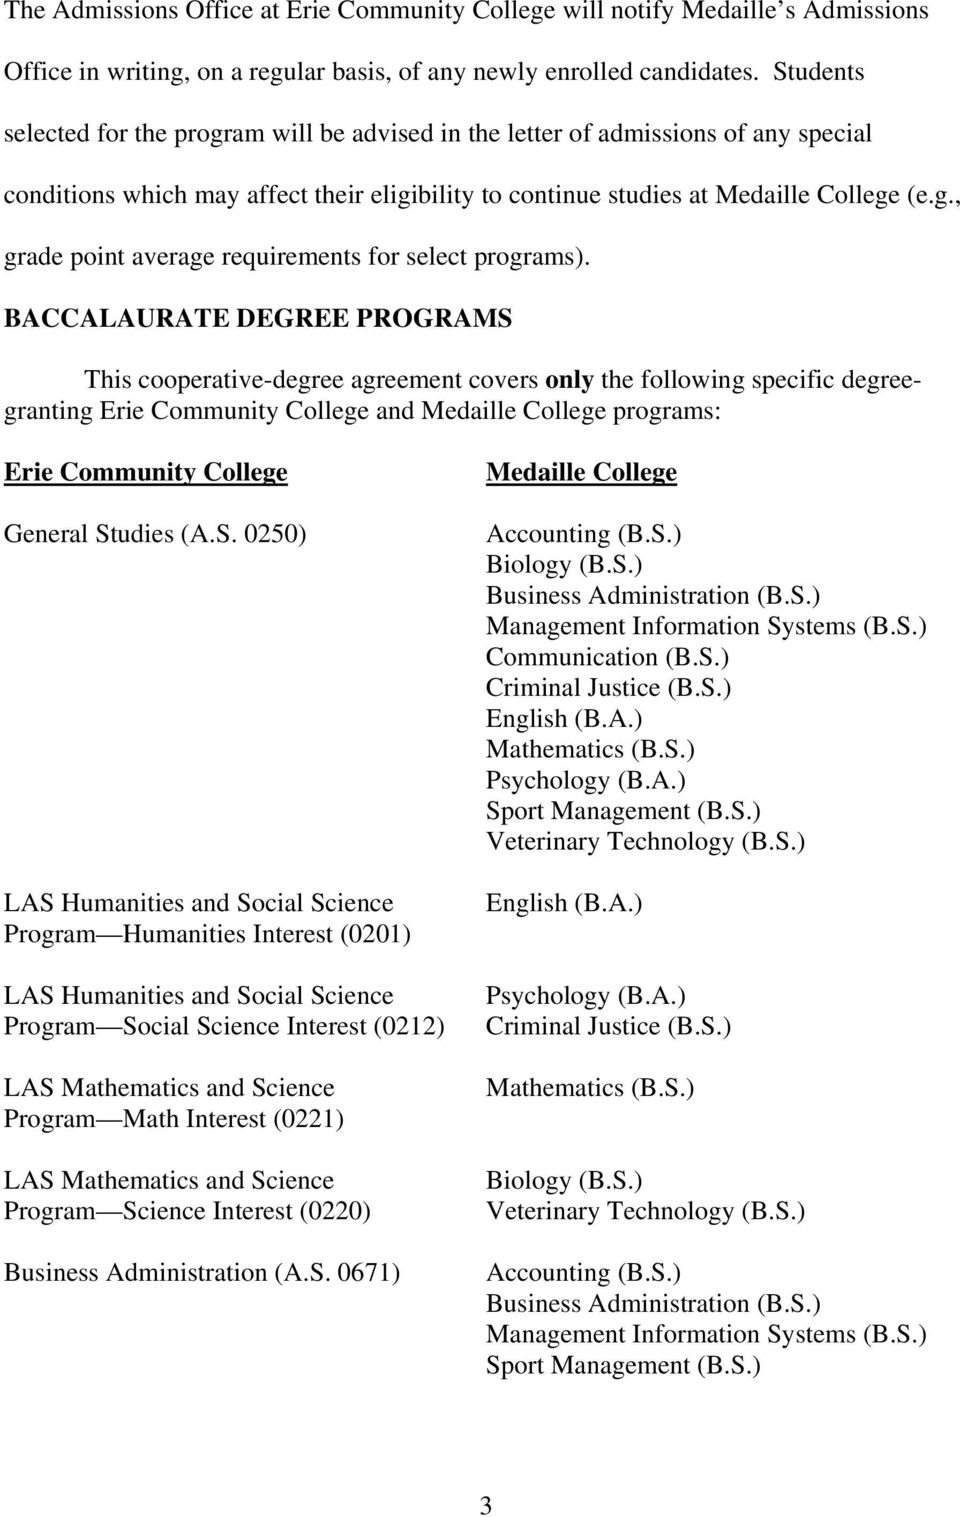 BACCALAURATE DEGREE PROGRAMS This cooperative-degree agreement covers only the following specific degreegranting Erie Community College and Medaille College programs: Erie Community College General